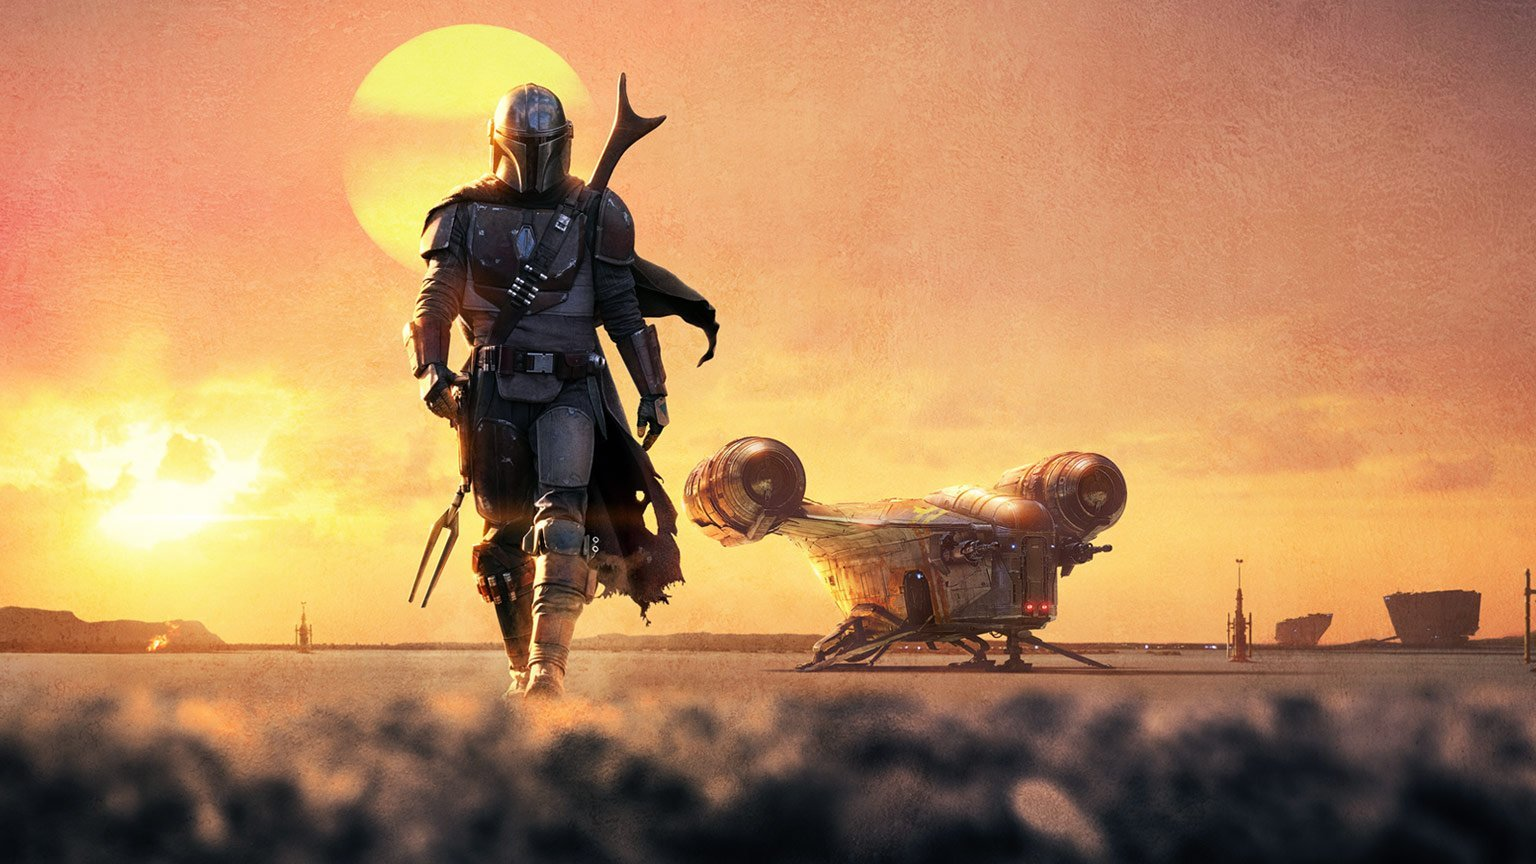 A poster of The Mandalorian.